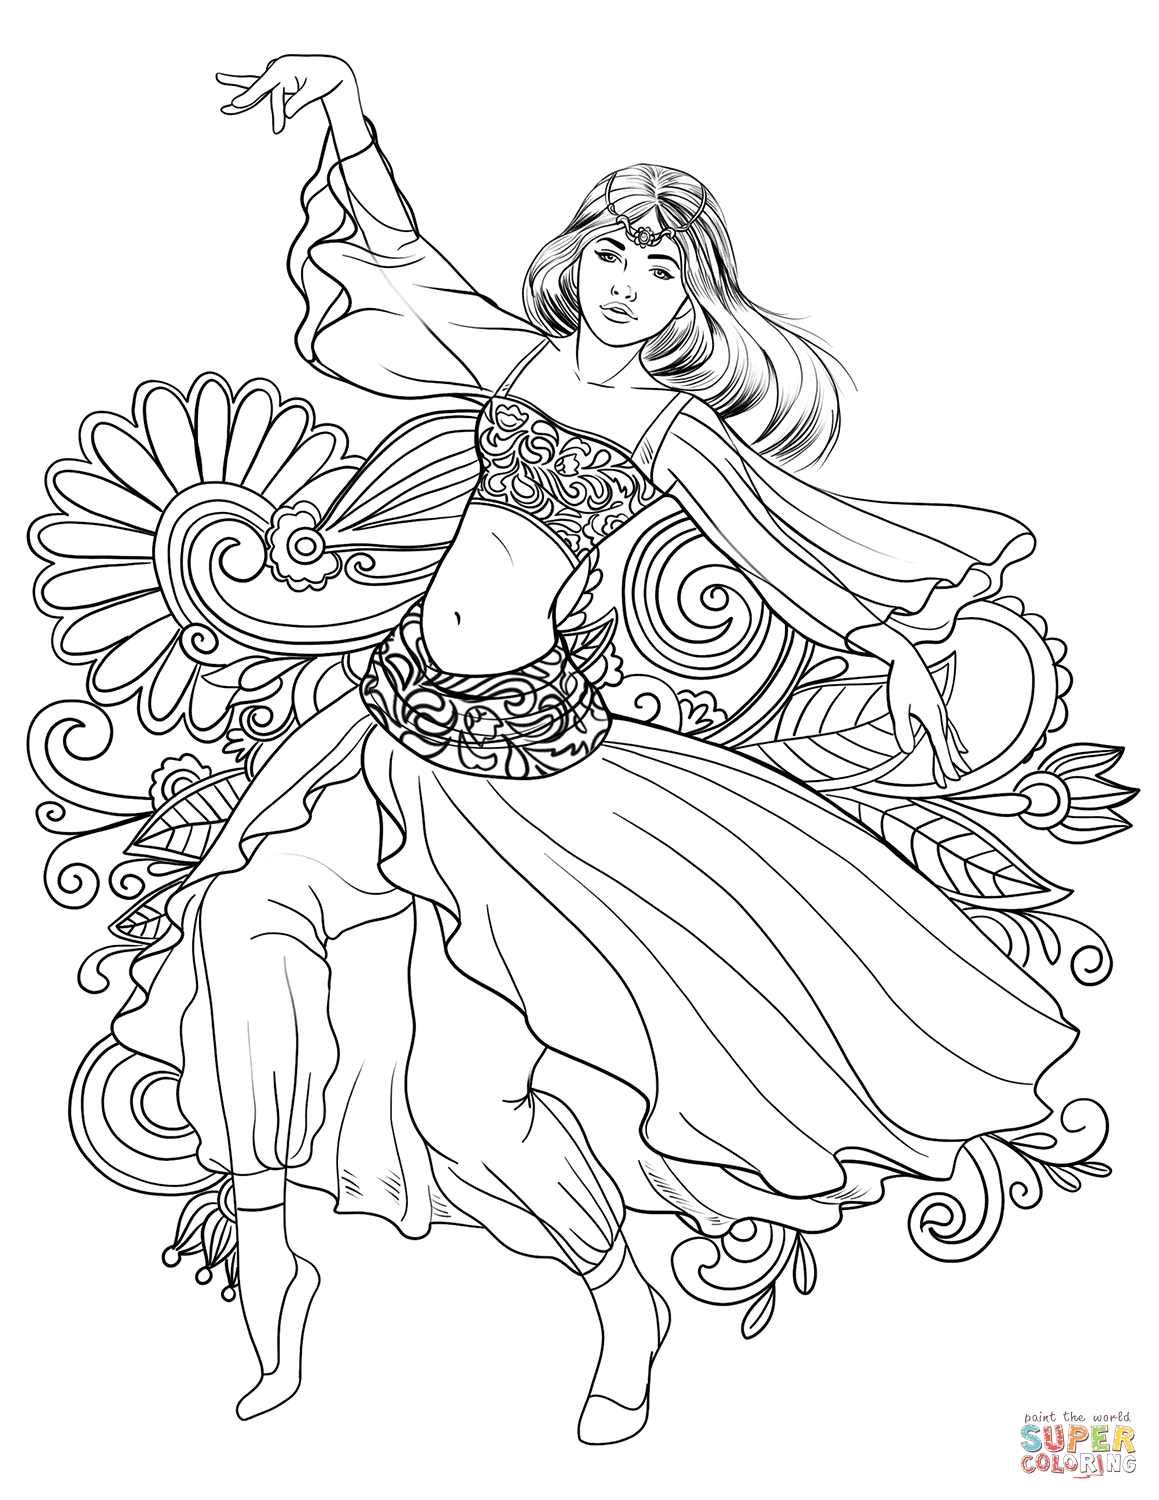 Arabic Woman Dancing Belly Dance Coloring Page